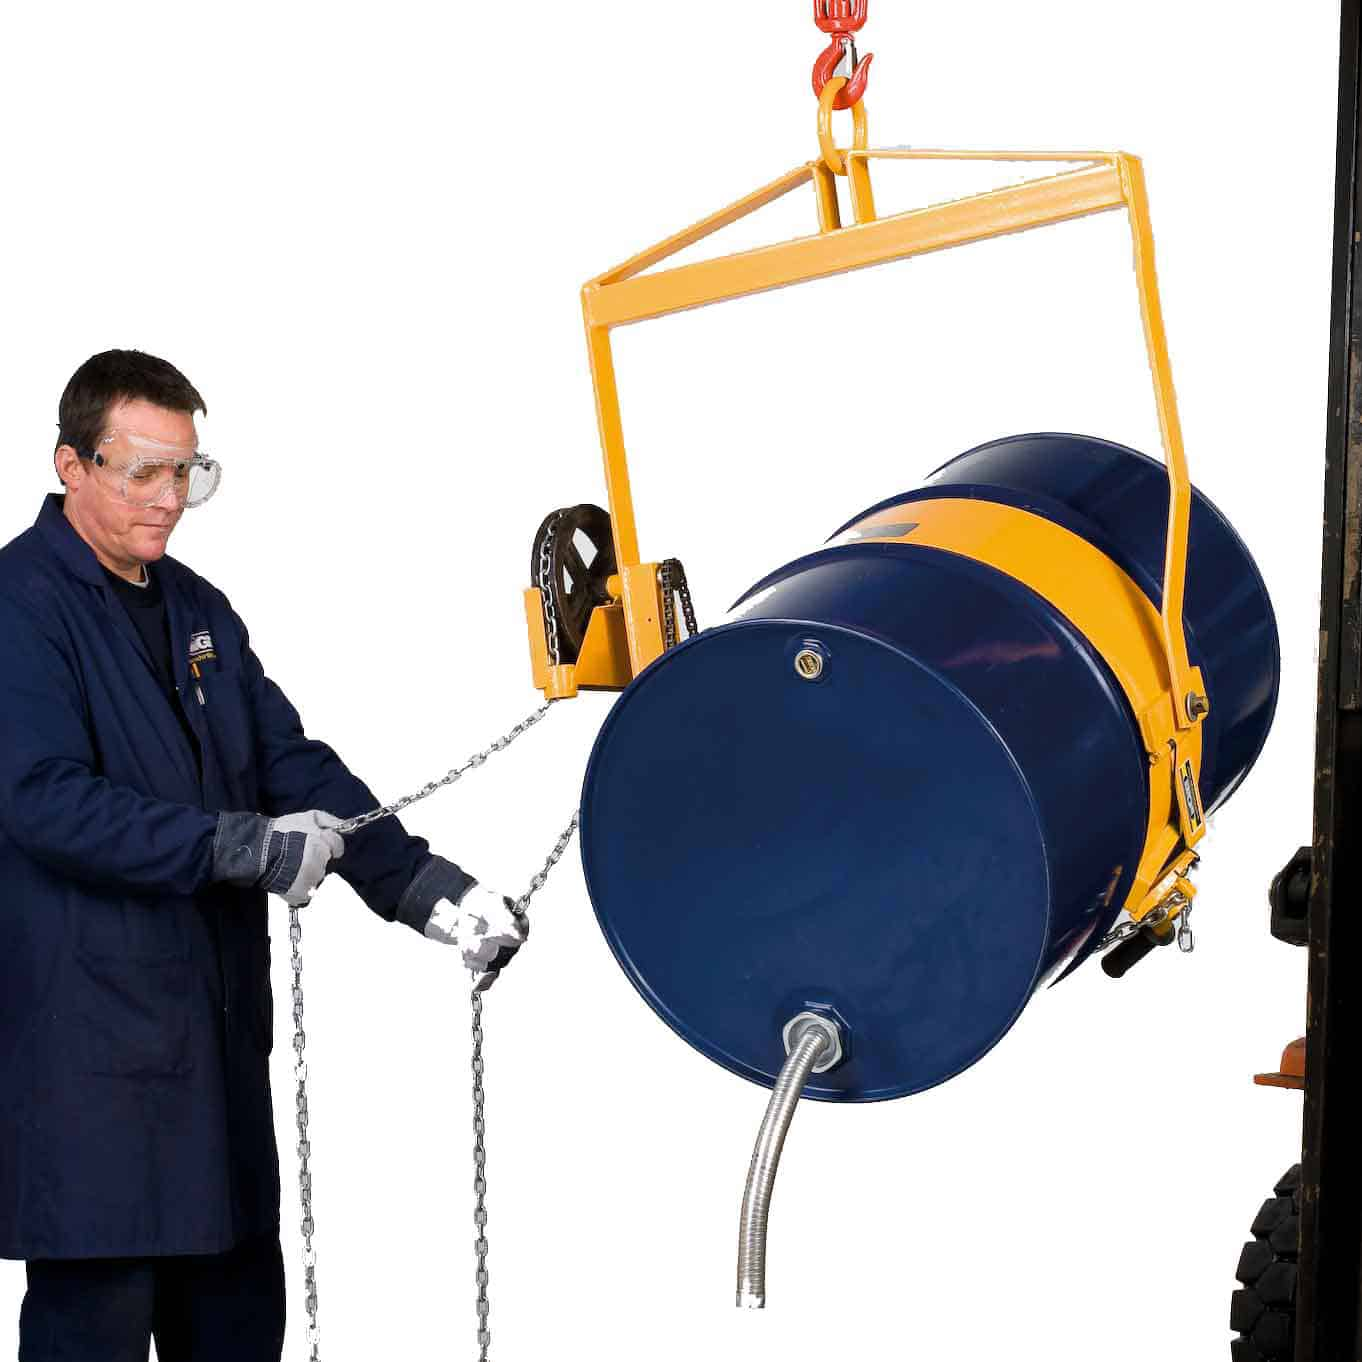 Chain Pulley Operated Drum Lifter